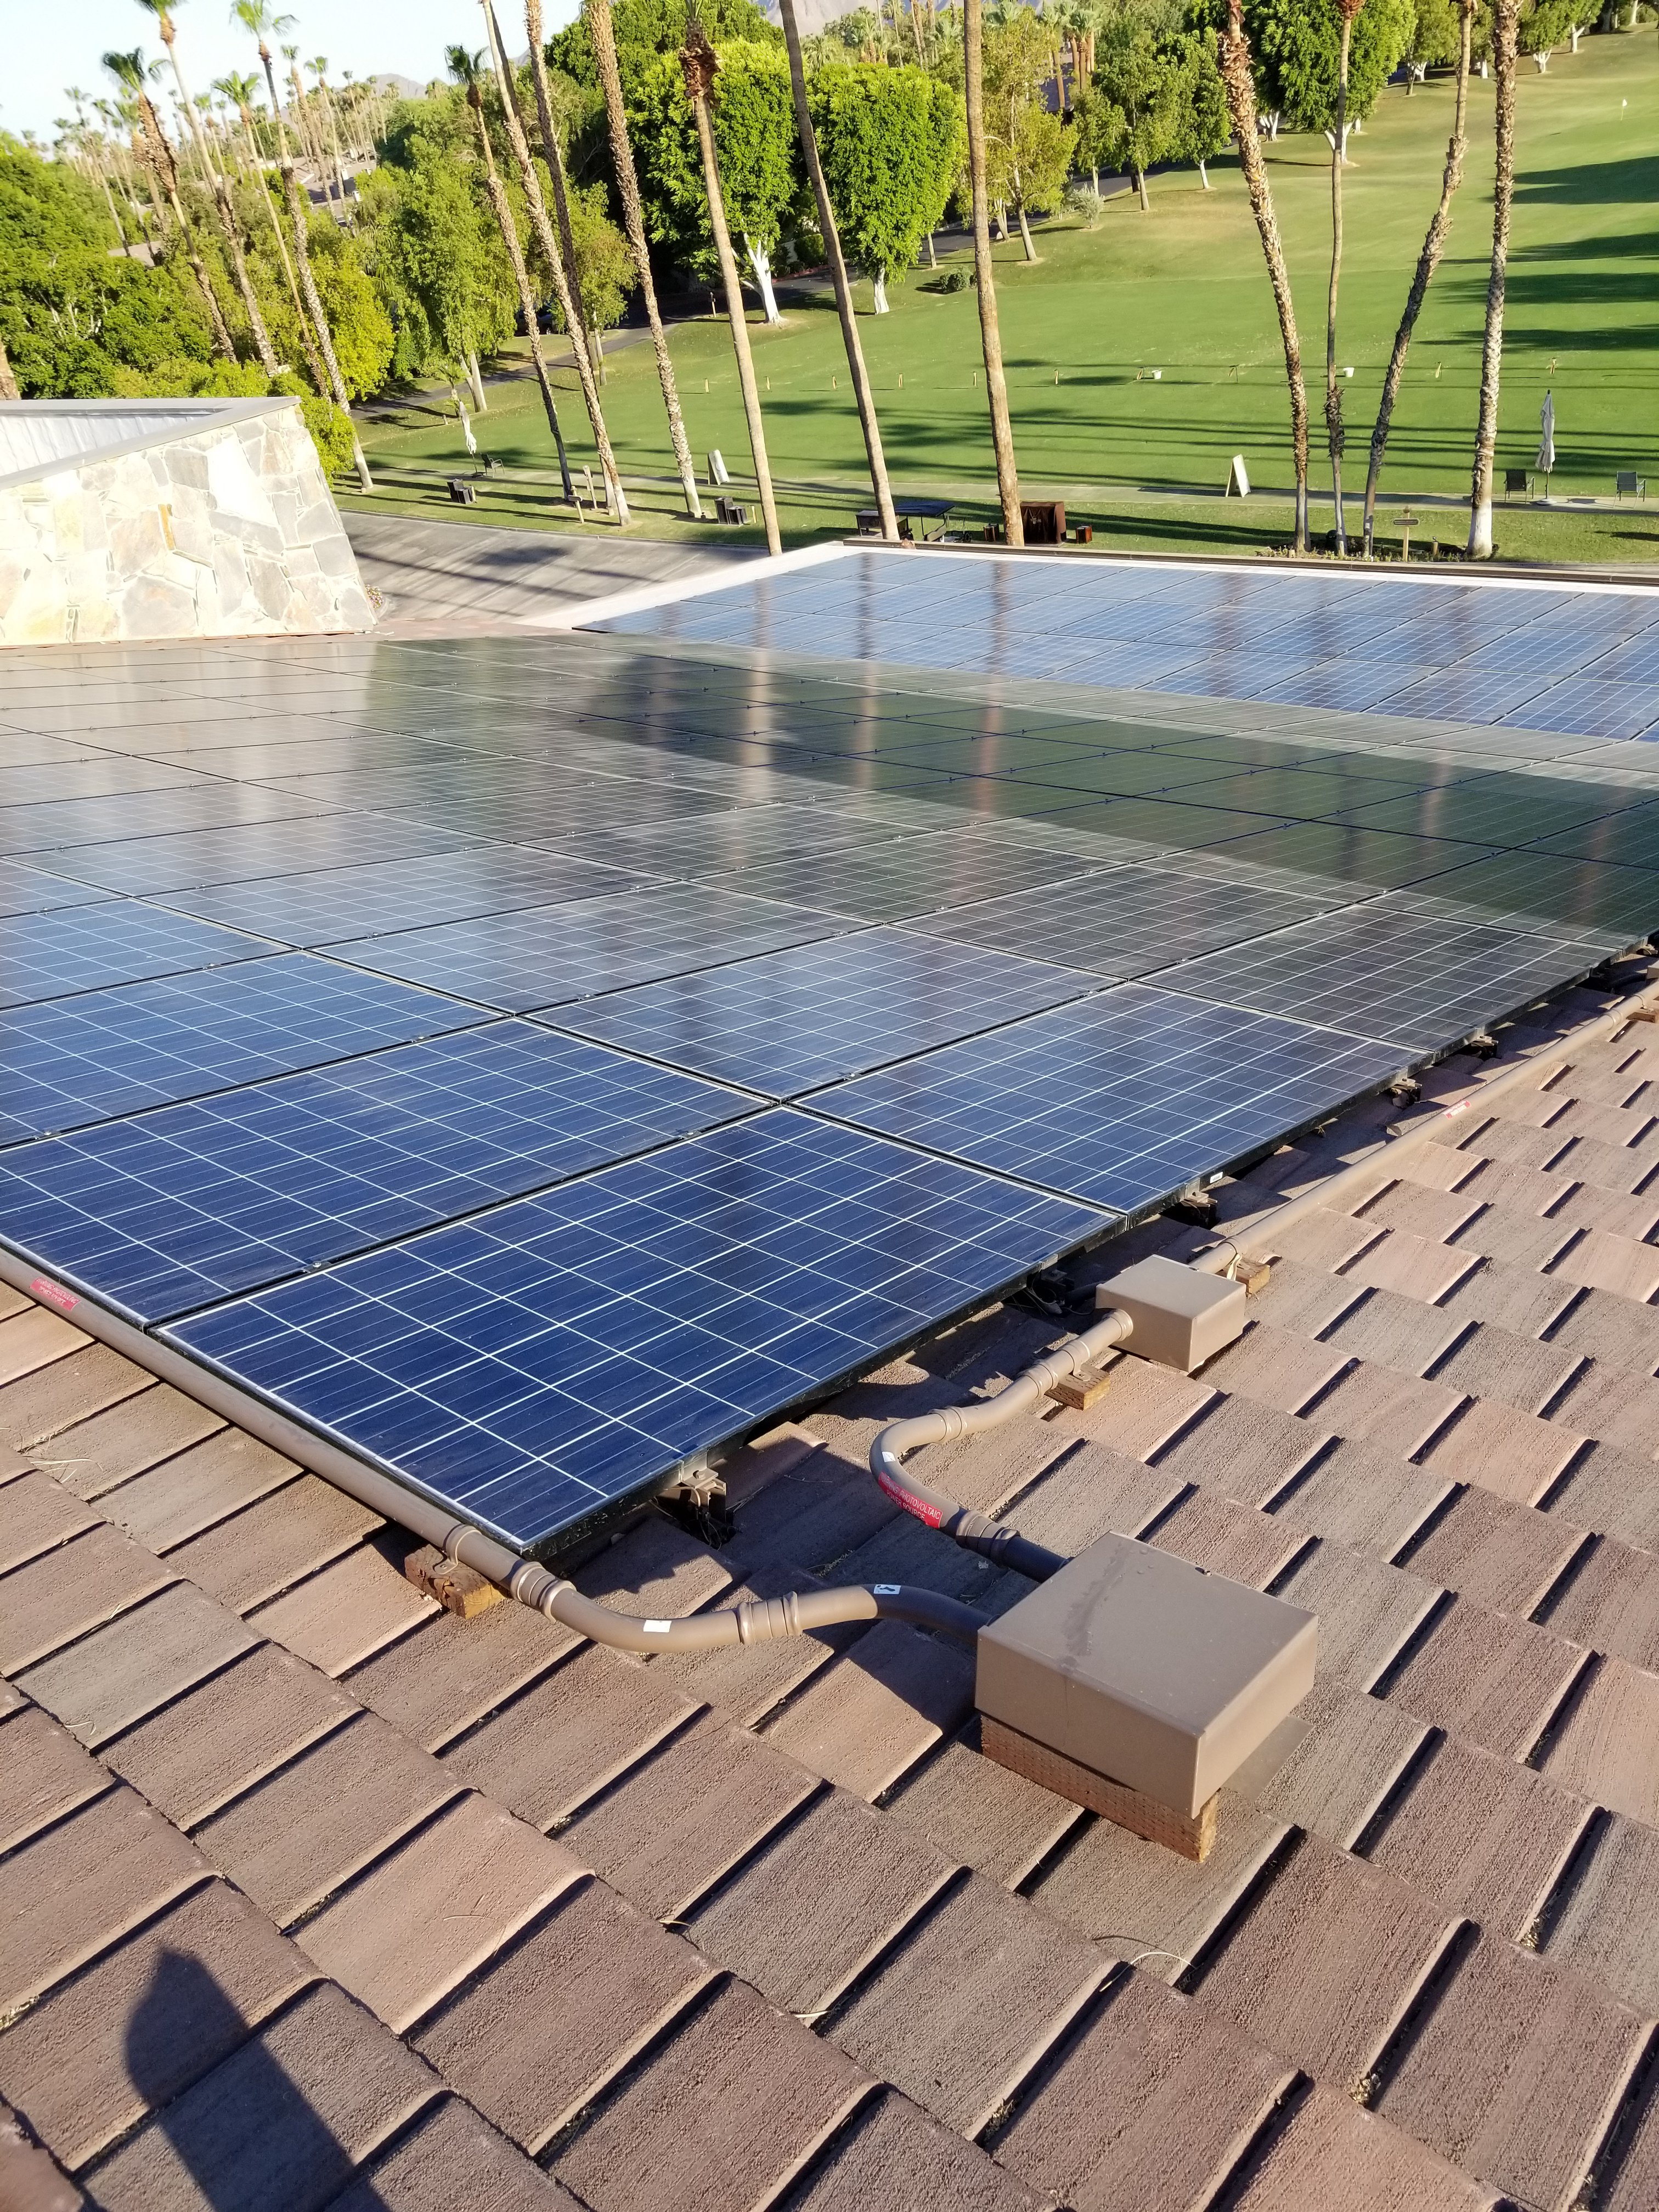 What Is The Best Way To Clean And Maintain Your Solar